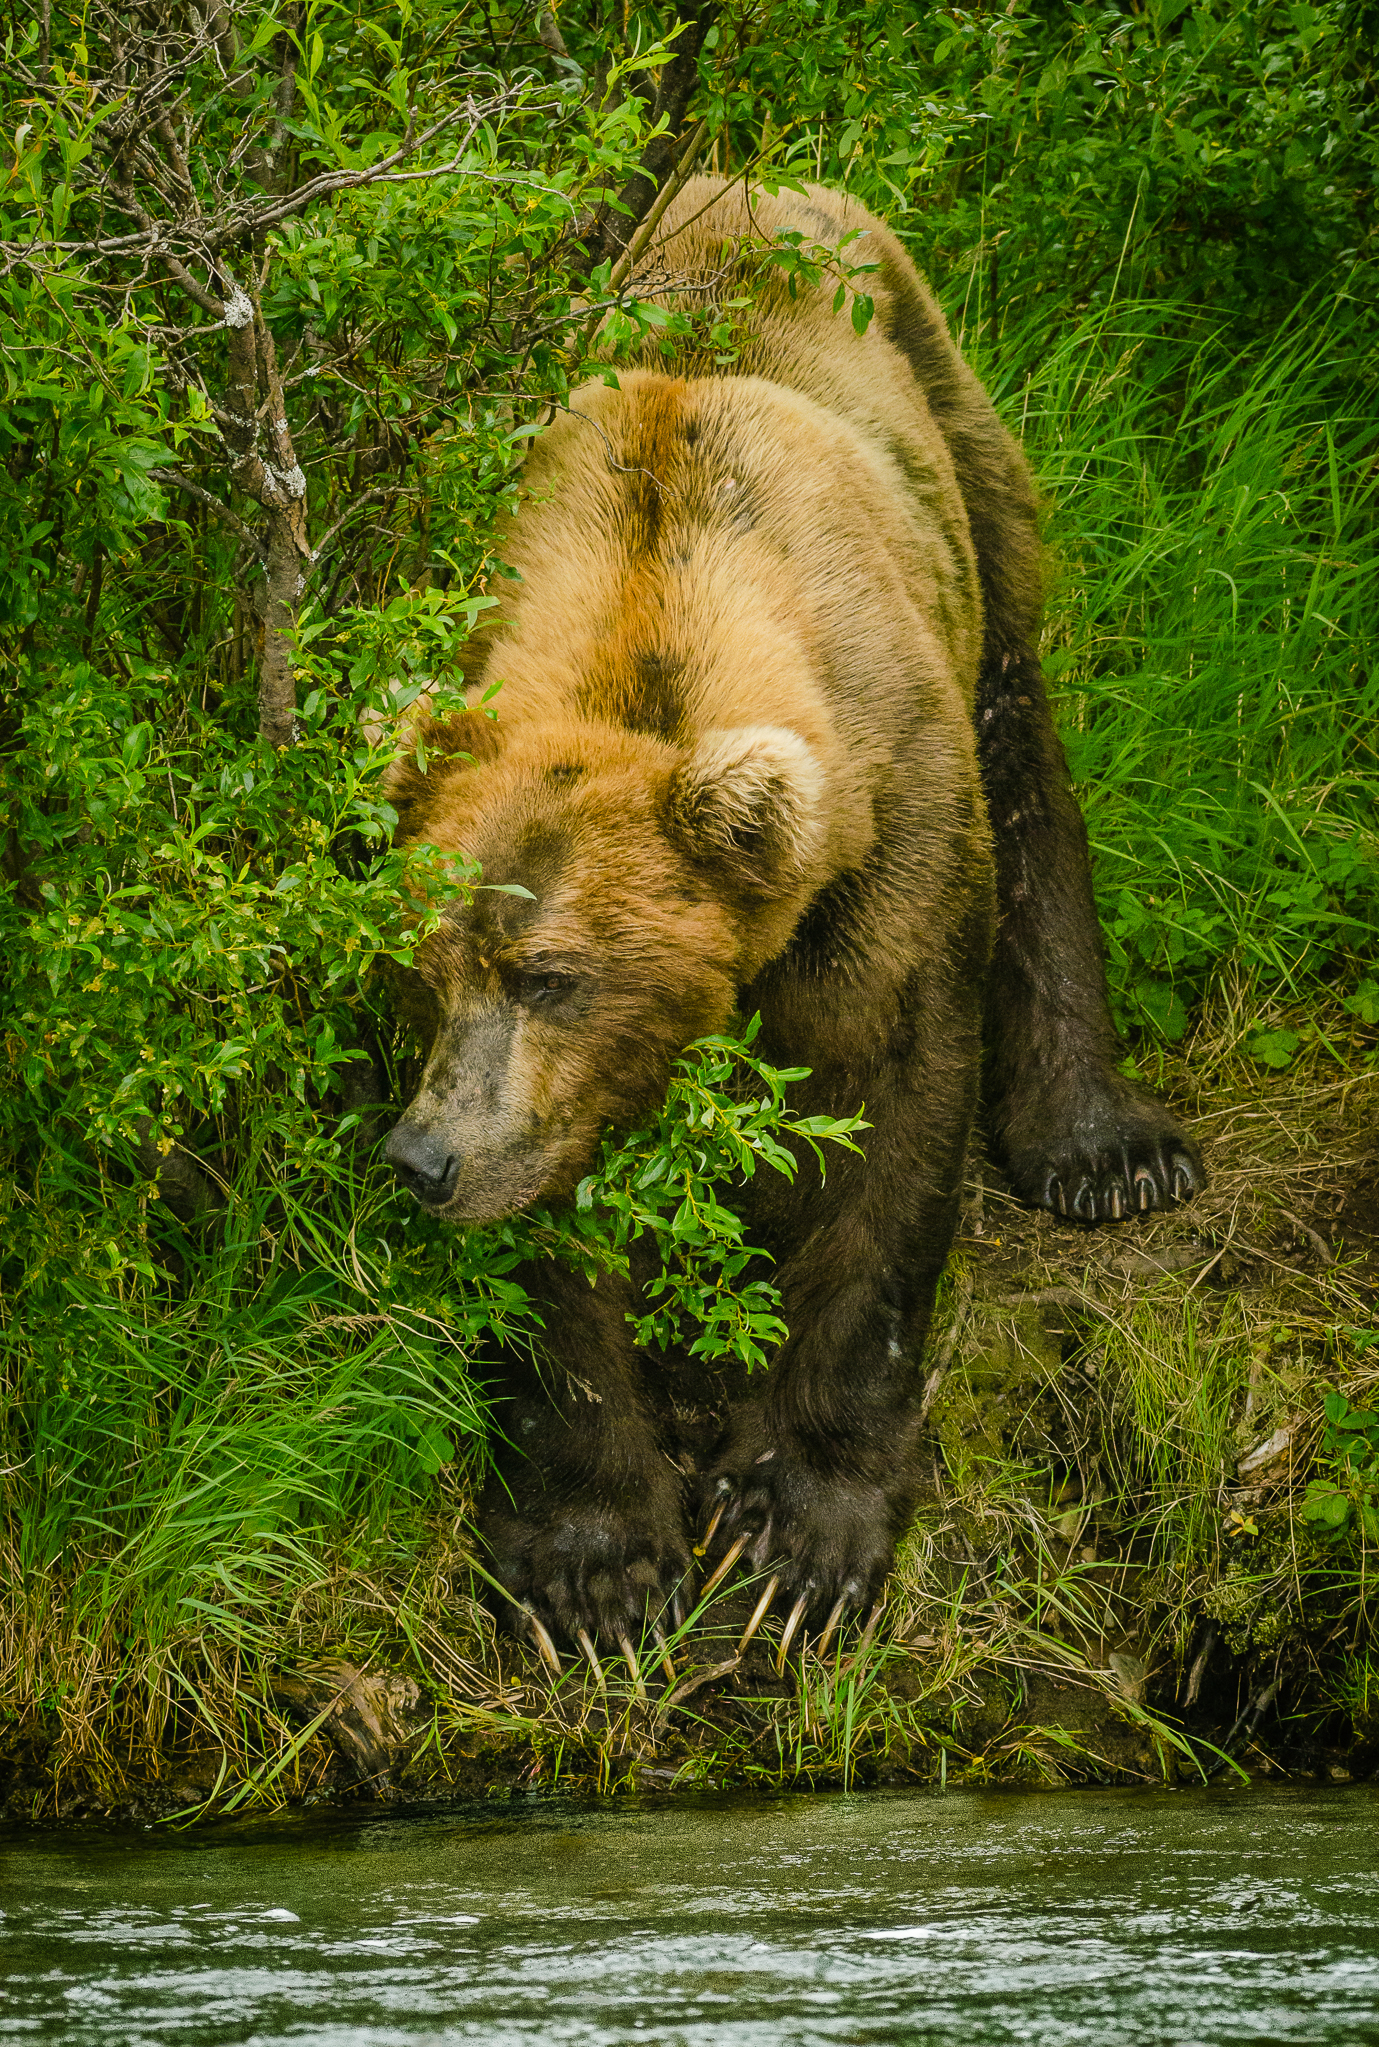 Grizzly bear hiding from salmon